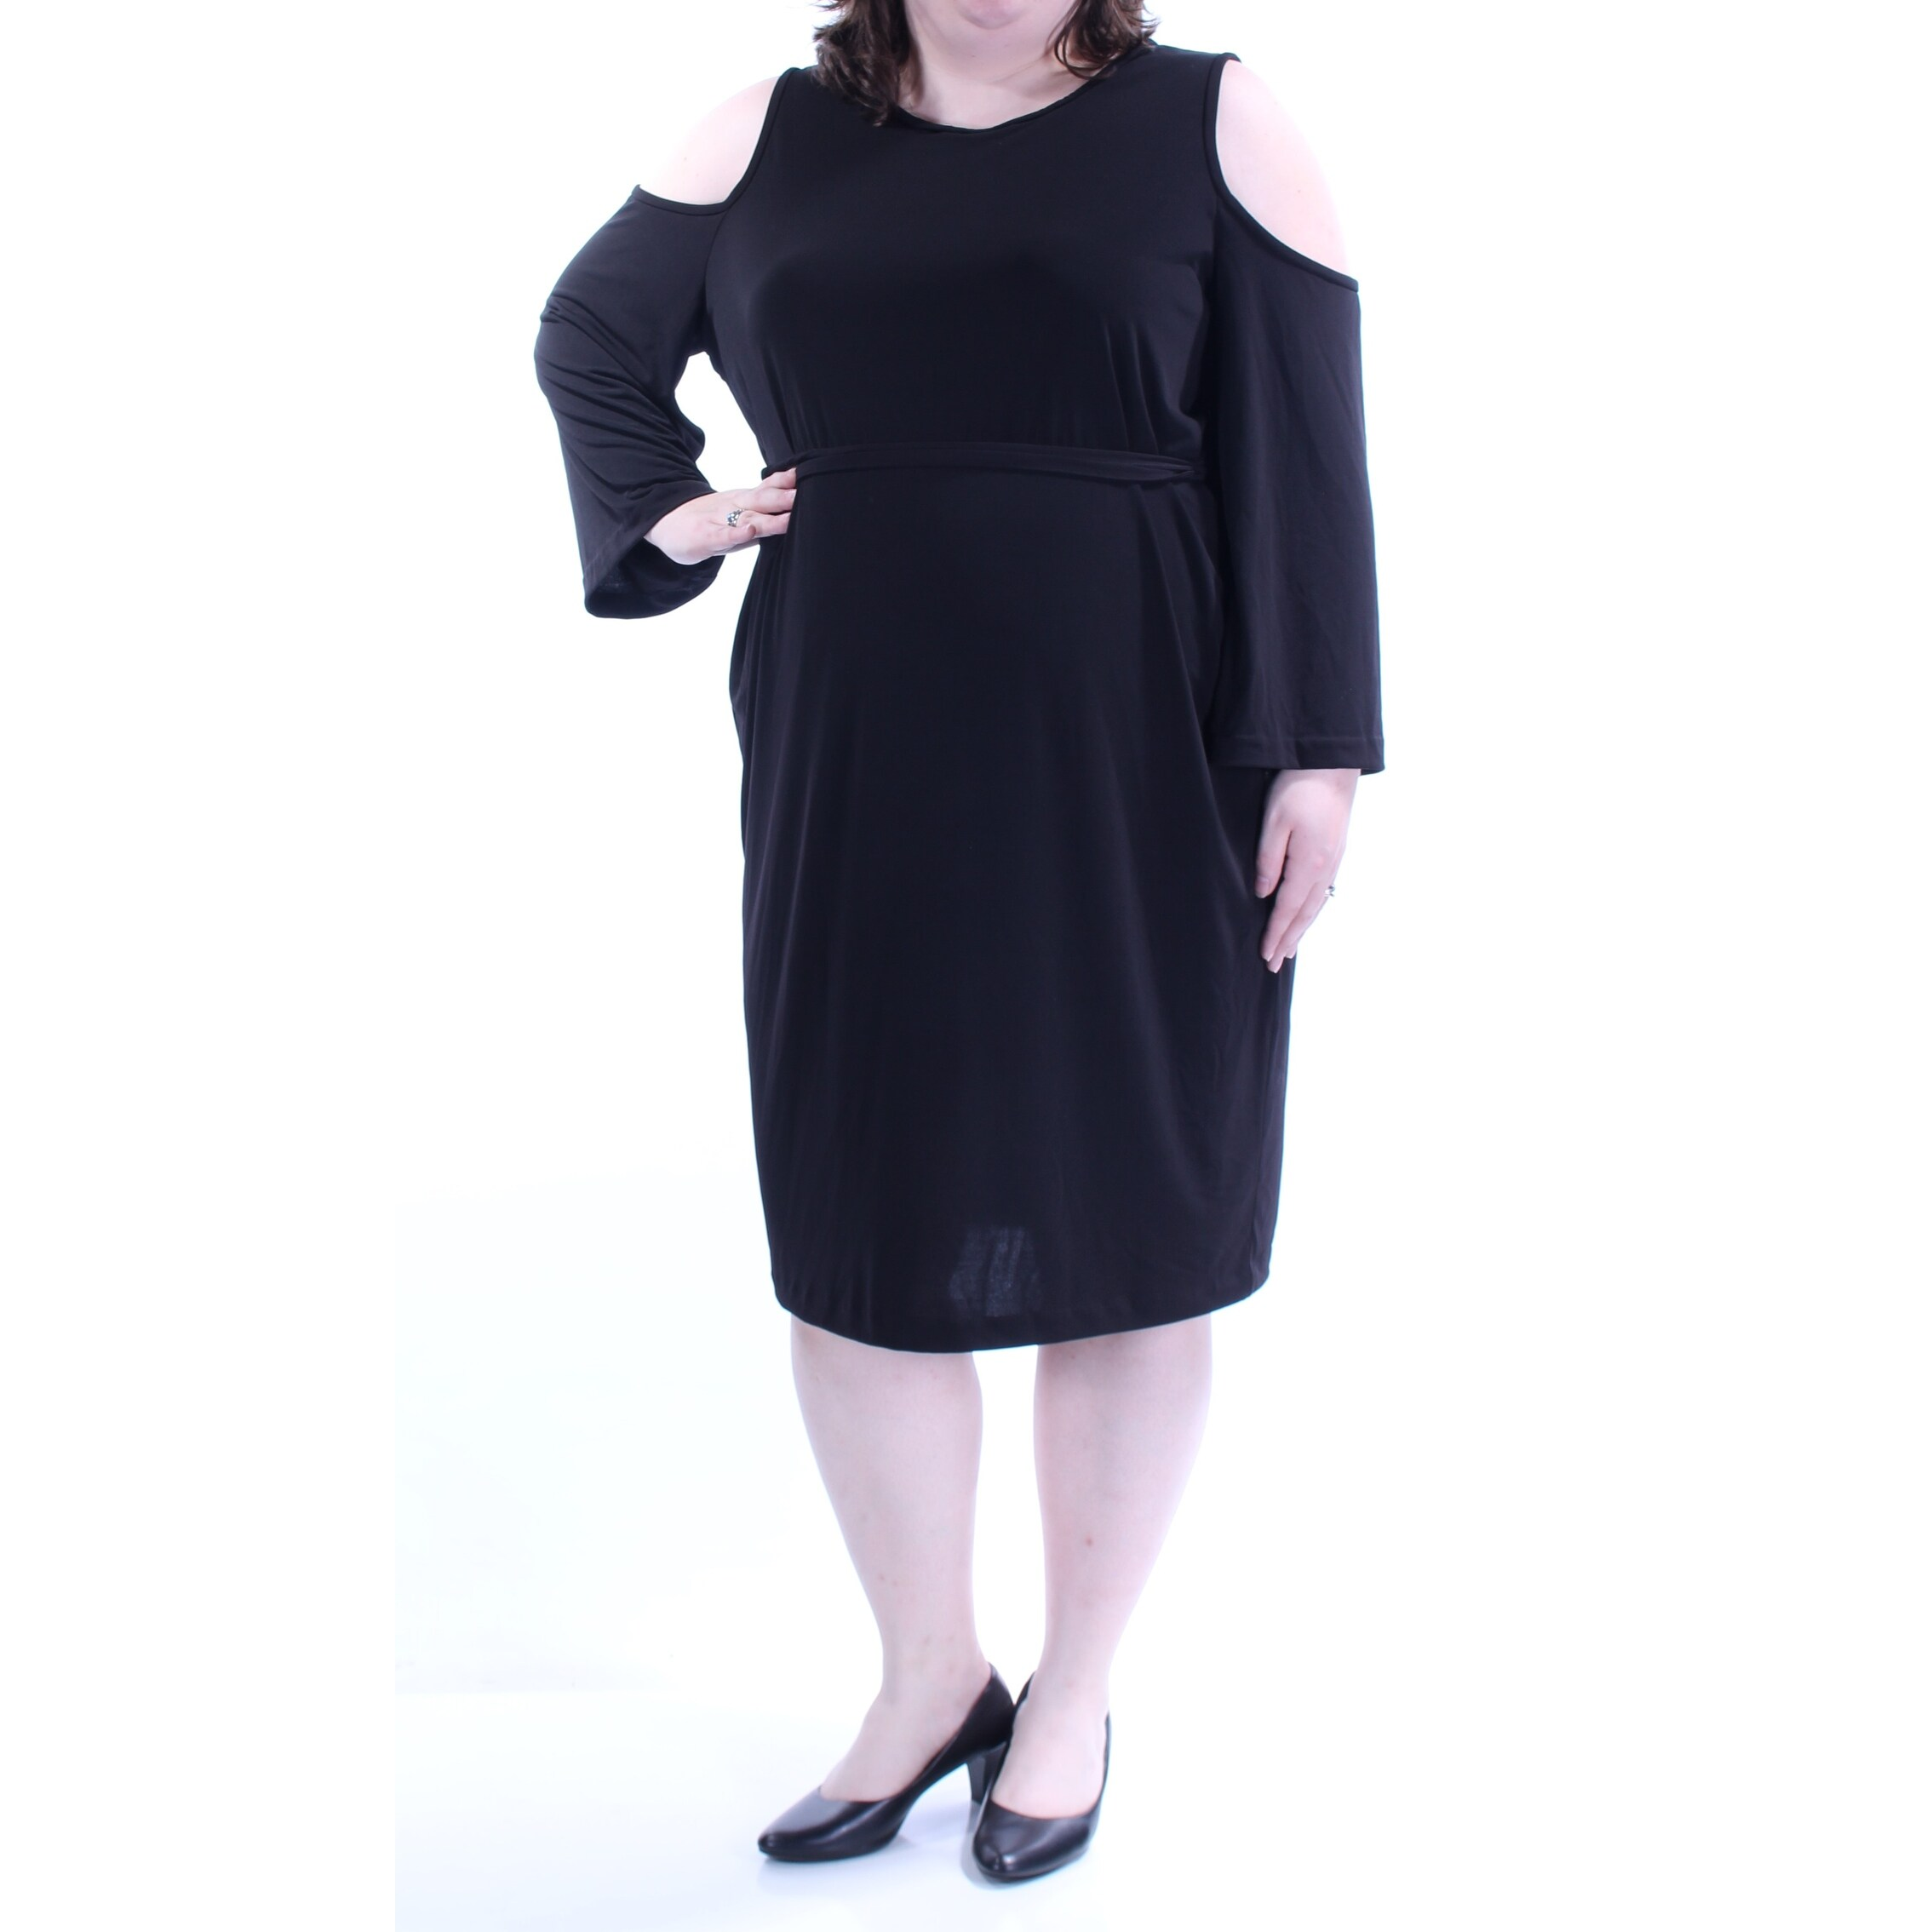 CALVIN KLEIN Womens Black Tie Cut Out Long Sleeve Jewel Neck Below The Knee  Empire Waist Dress Plus Size: 20W